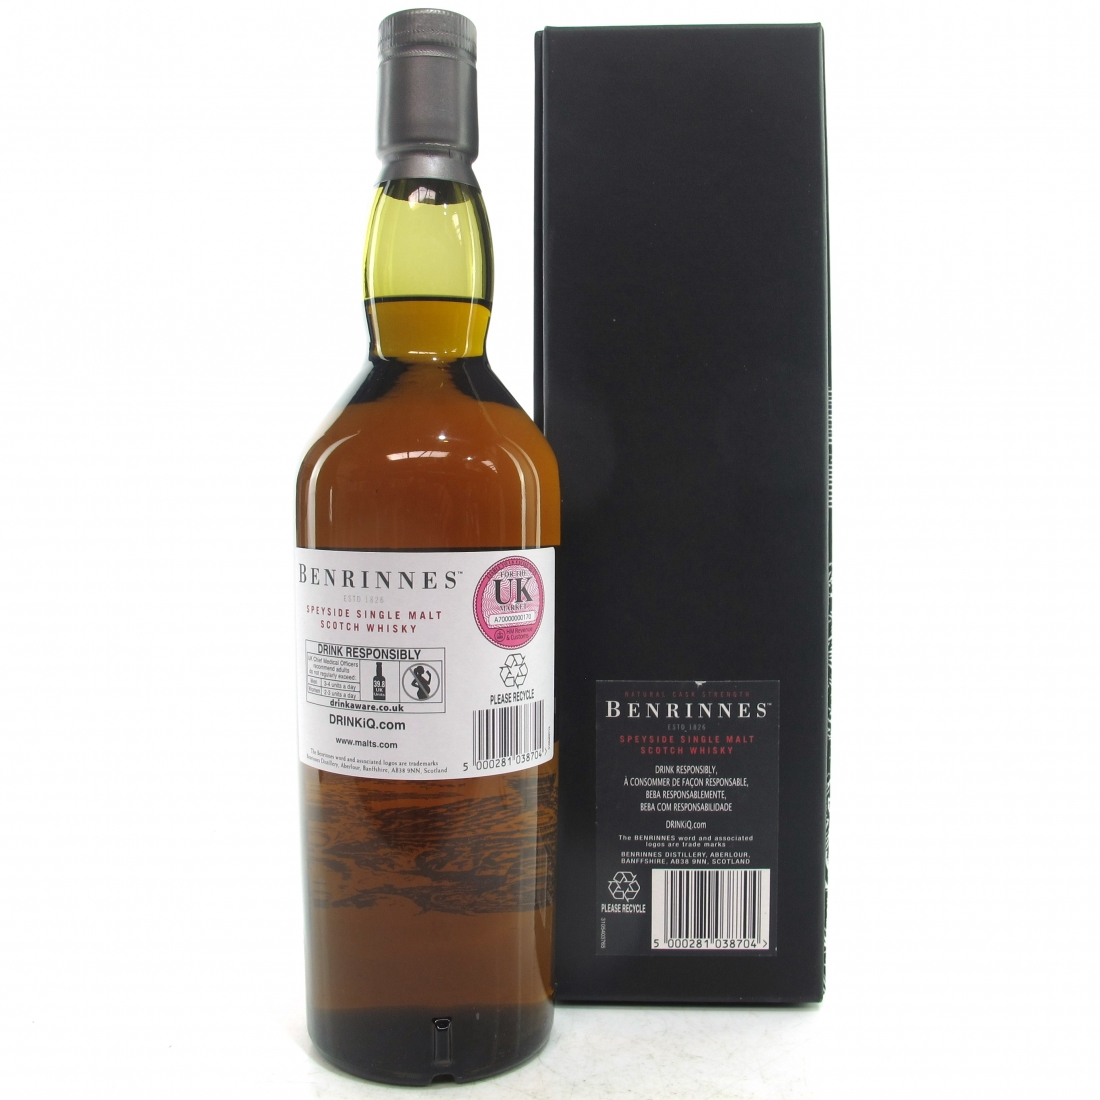 Benrinnes 1992 21 Year Old Cask Strength